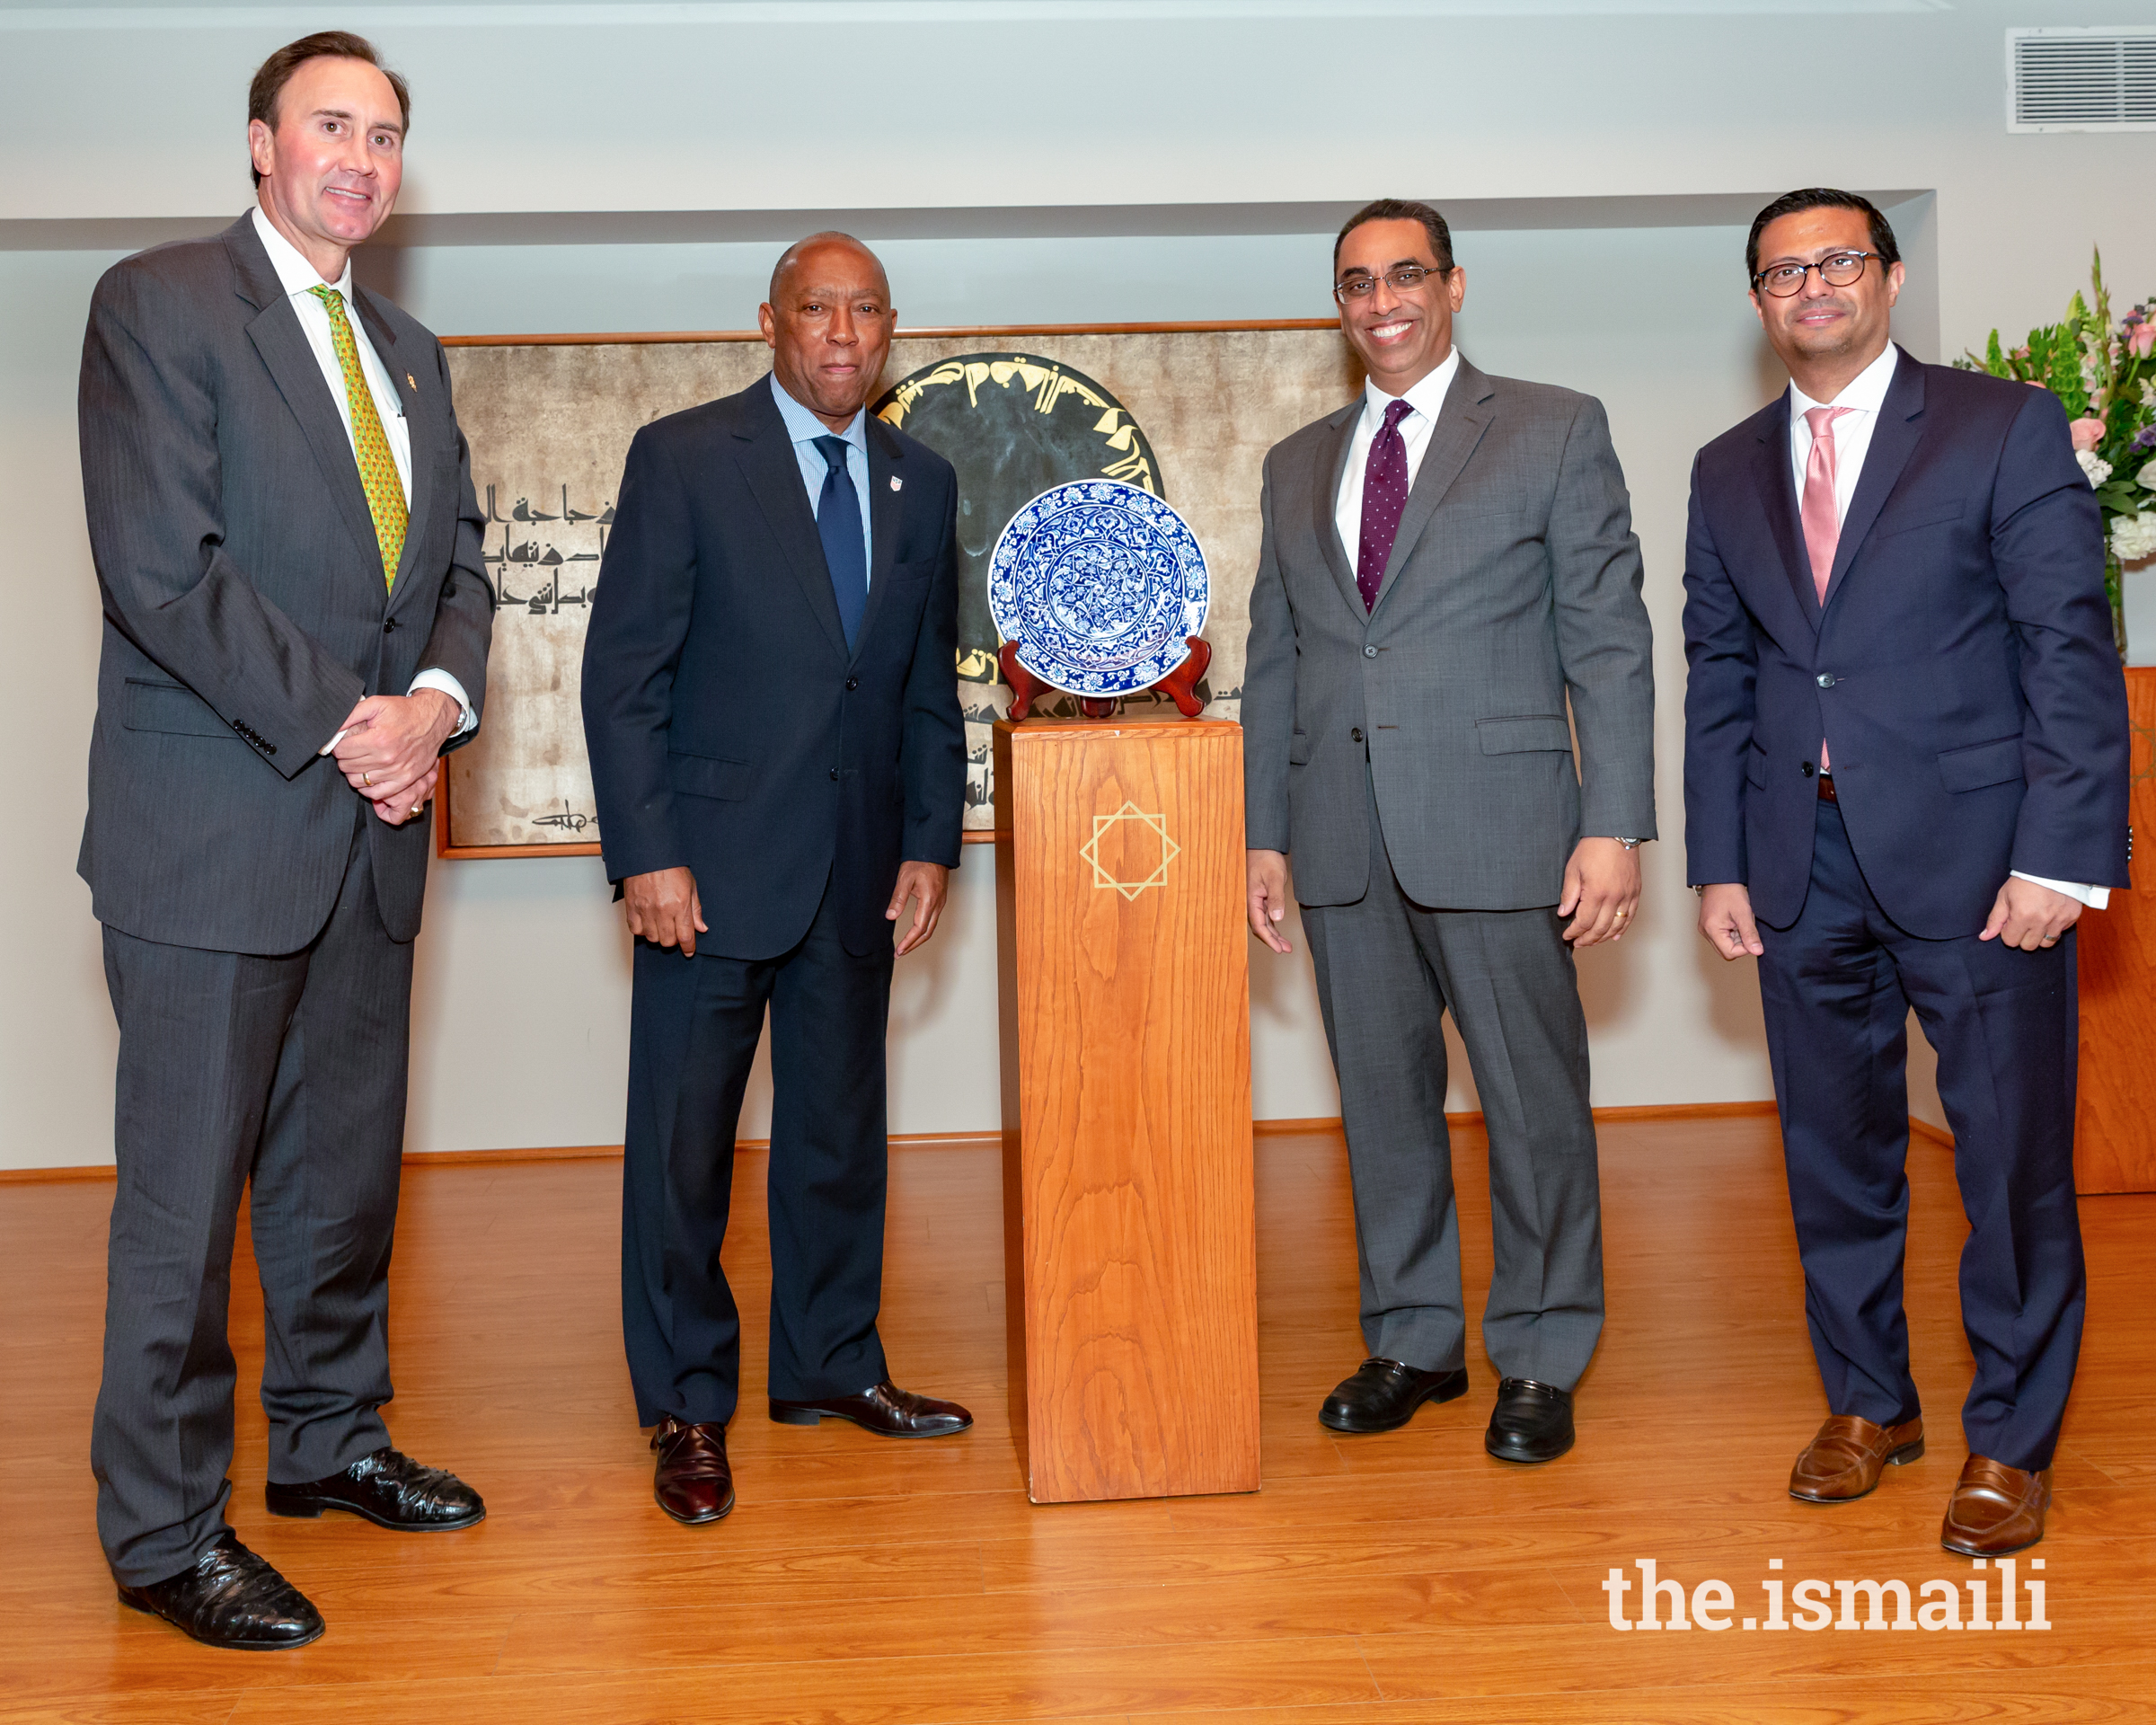 Presentation of gift to the Keynote Speaker Mayor Sylvester Turner. From left to right: Congressman Pete Olson, 22nd District US Congress; Mayor Sylvester Turner, City of Houston; President Alkarim Alidina, Aga Khan Council USA; President Murad Ajani, Aga Khan Council SW USA.